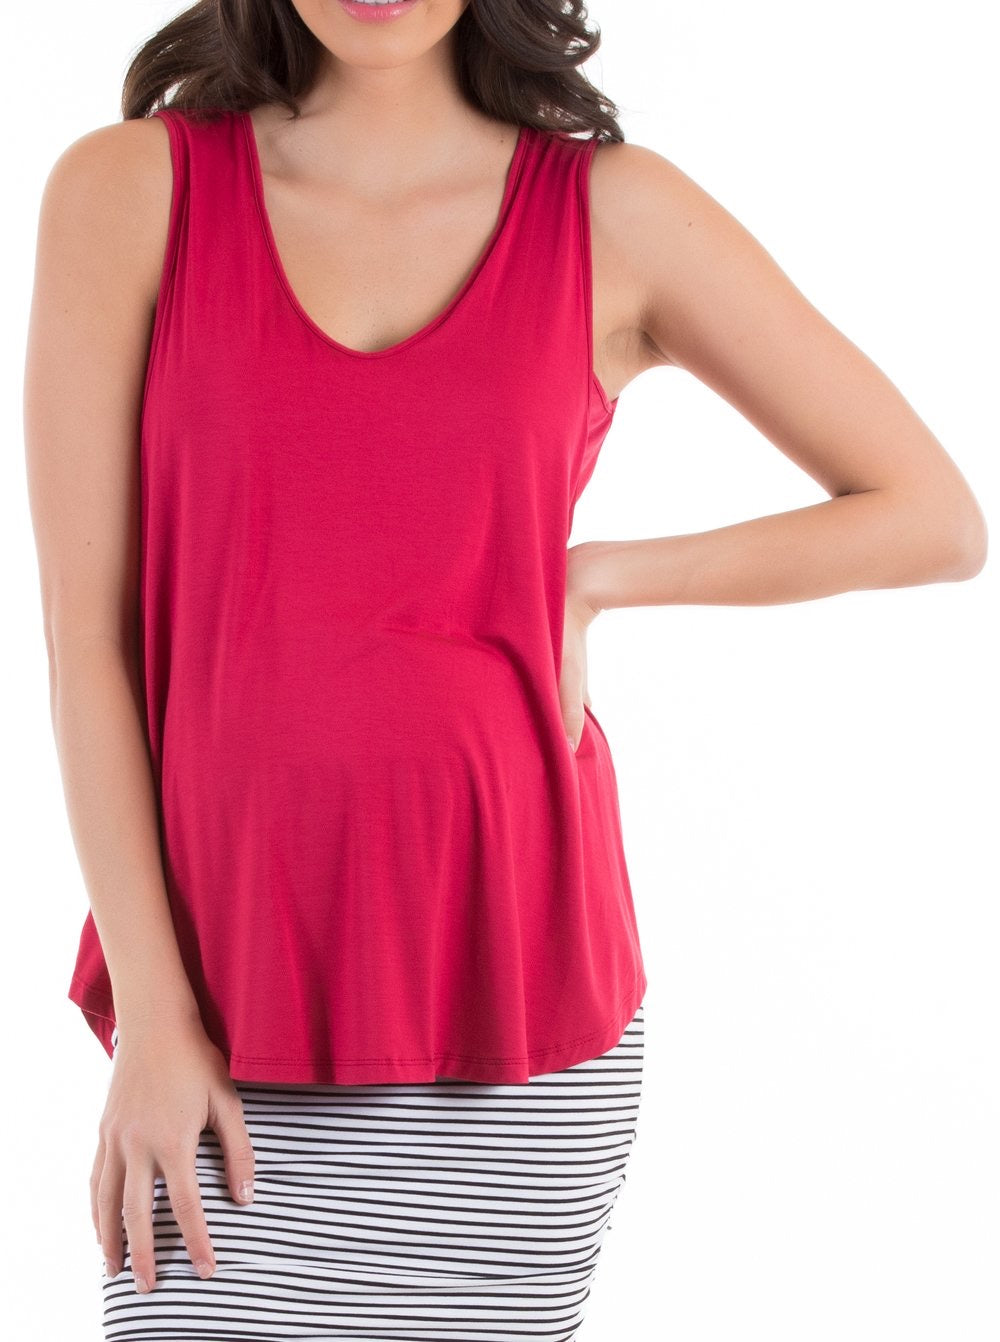 Angel Maternity 'The Swing Tank' Nursing Top in Red